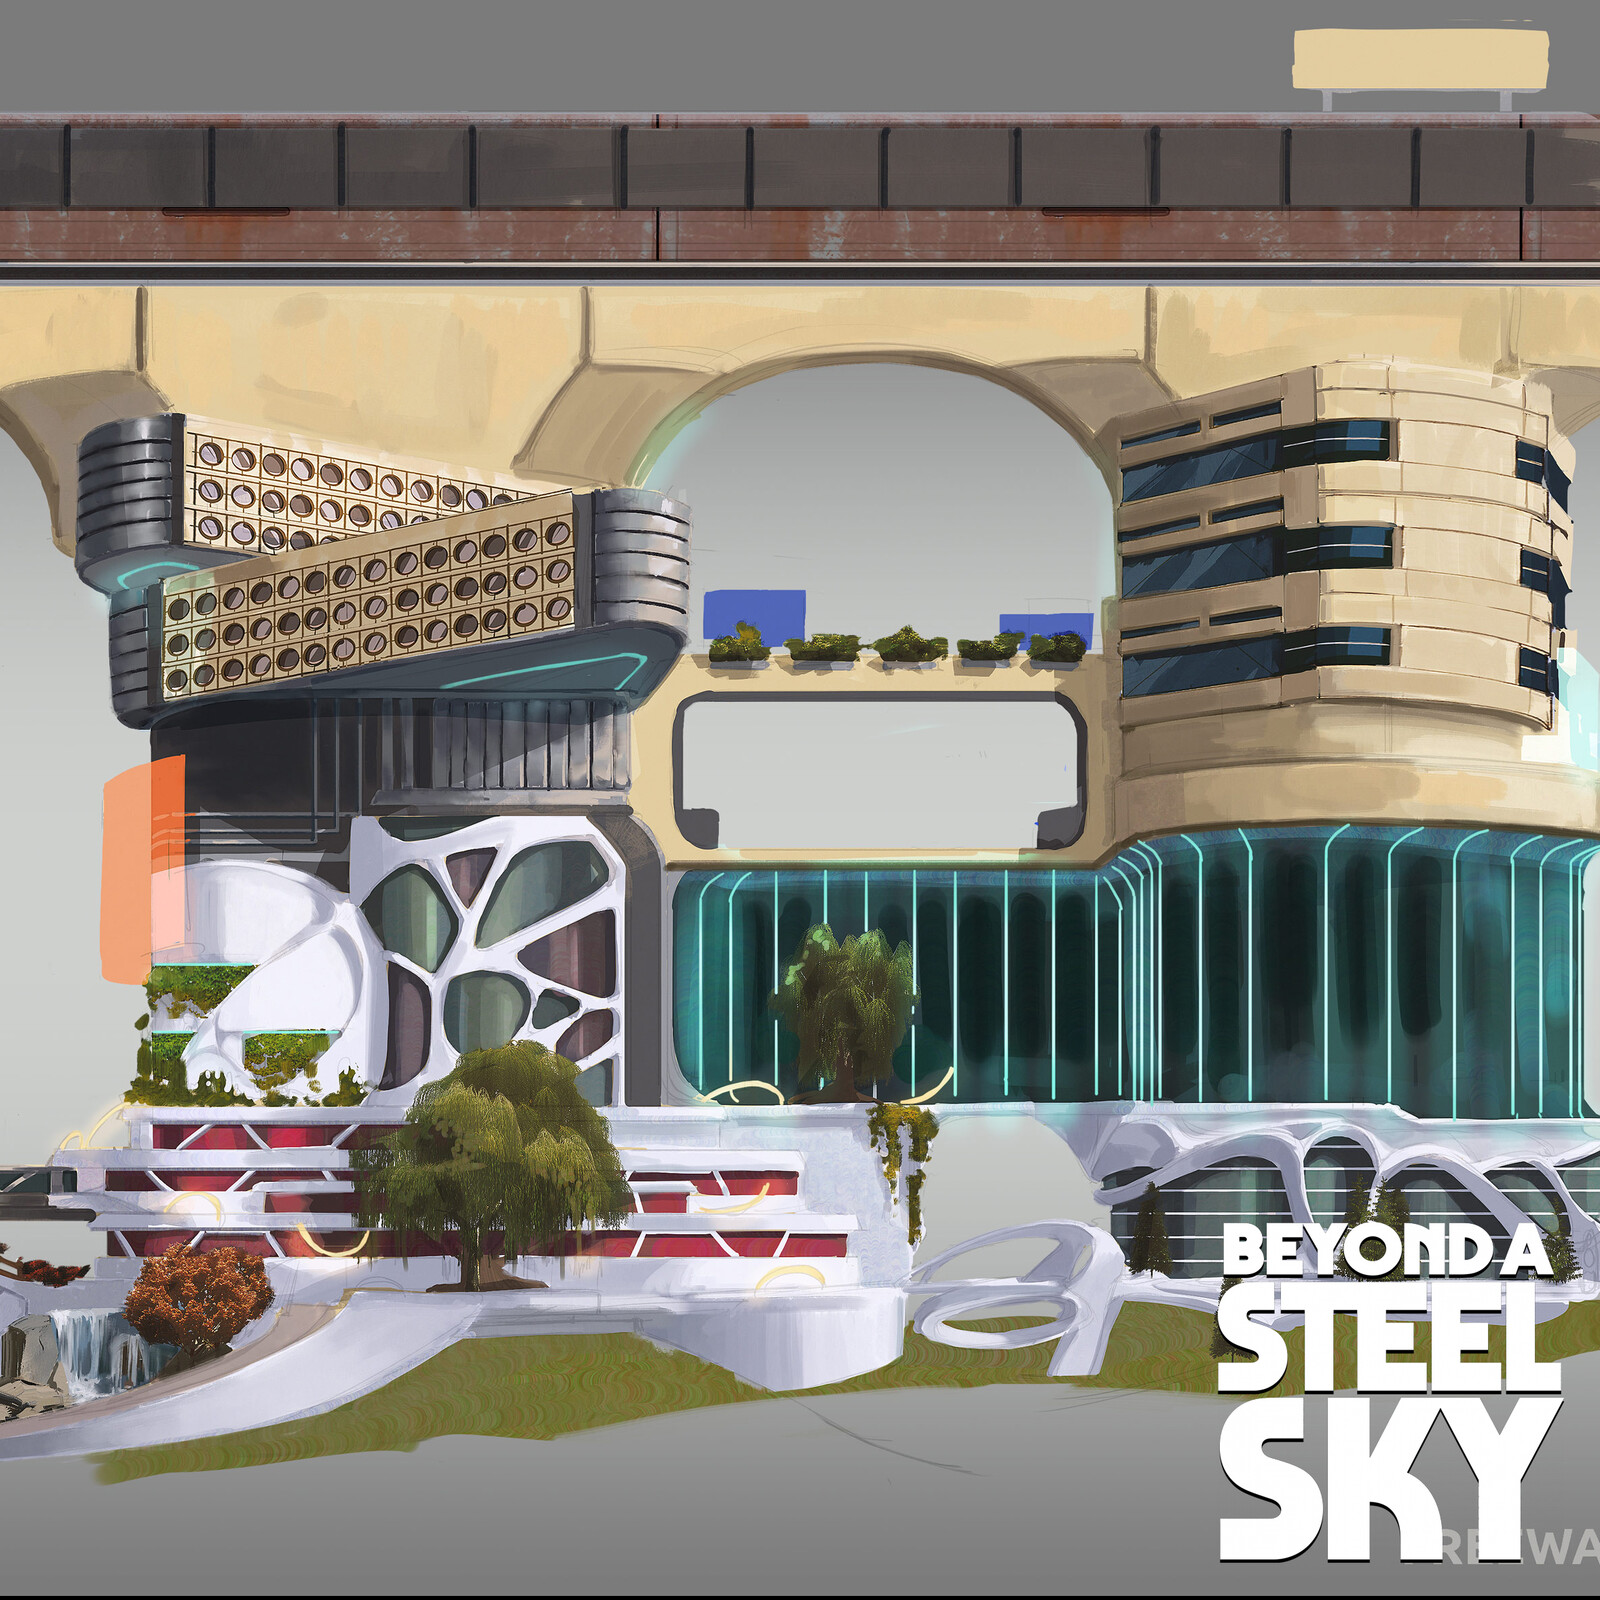 BEYOND A STEEL SKY: Union City bridges and city props